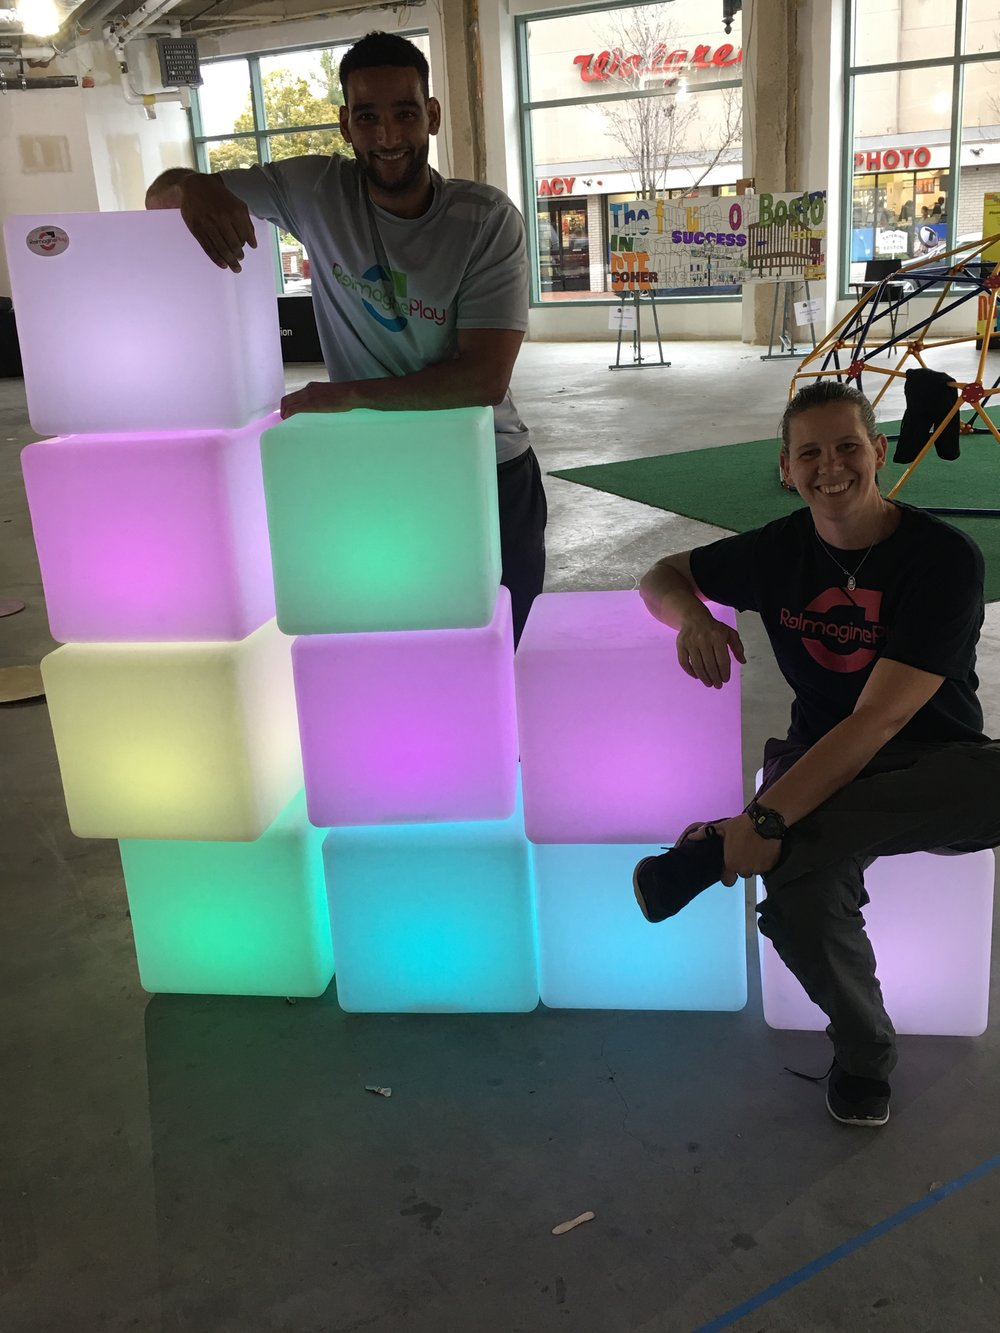 Light boxes offered a place to sit for caregivers and an interactive play activity for kids.